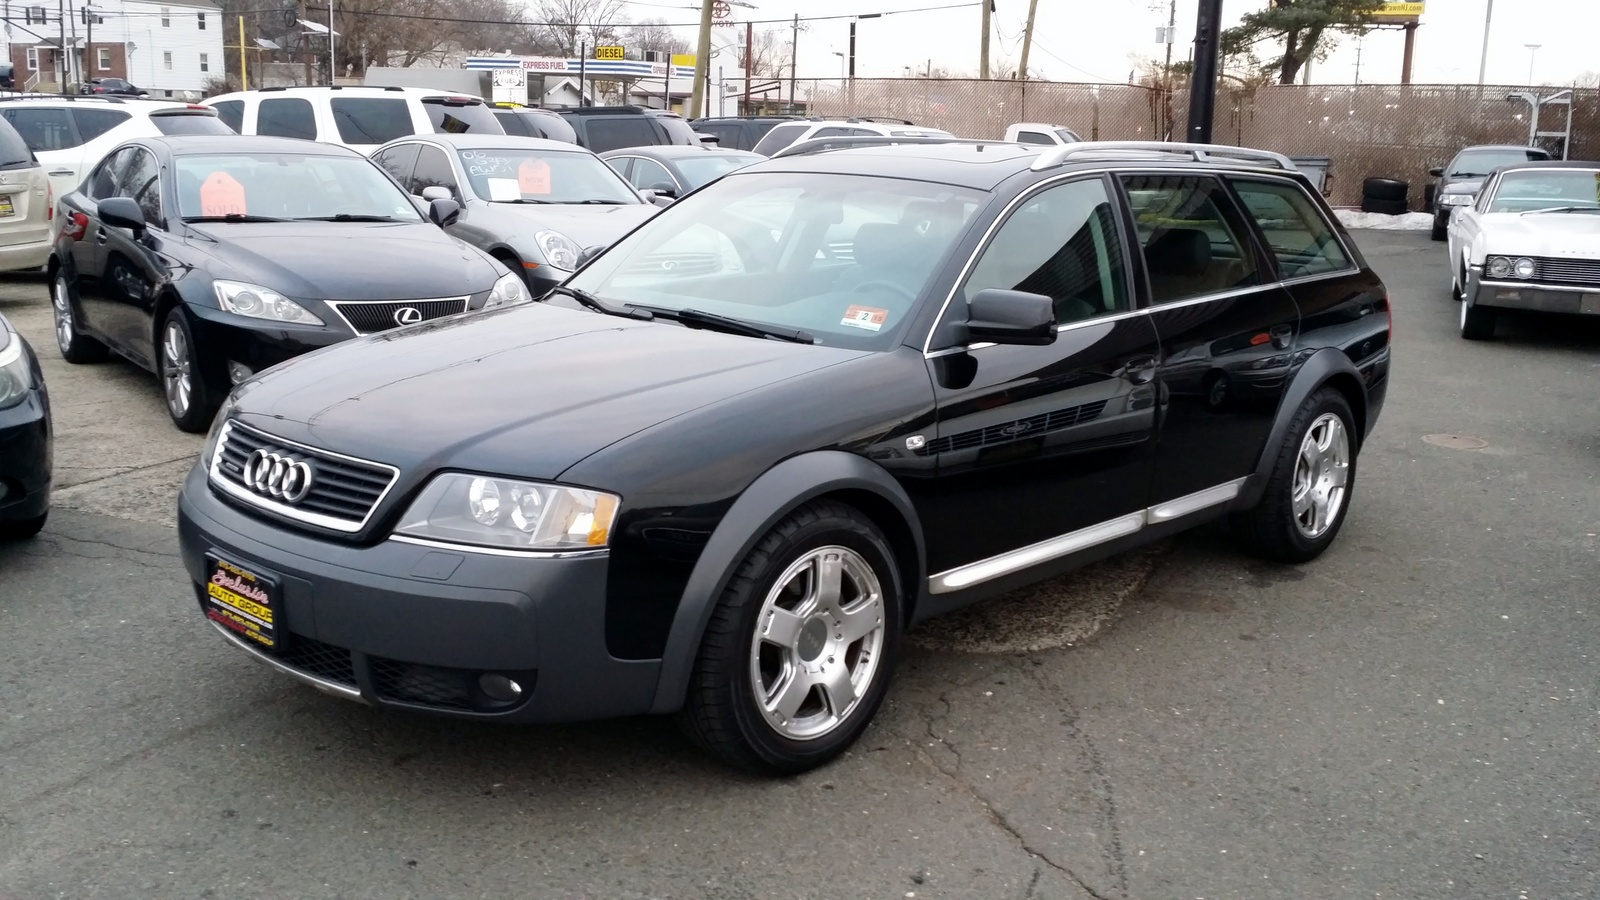 2003 audi a6 2 7 t quattro c5 related infomation specifications weili automotive network. Black Bedroom Furniture Sets. Home Design Ideas